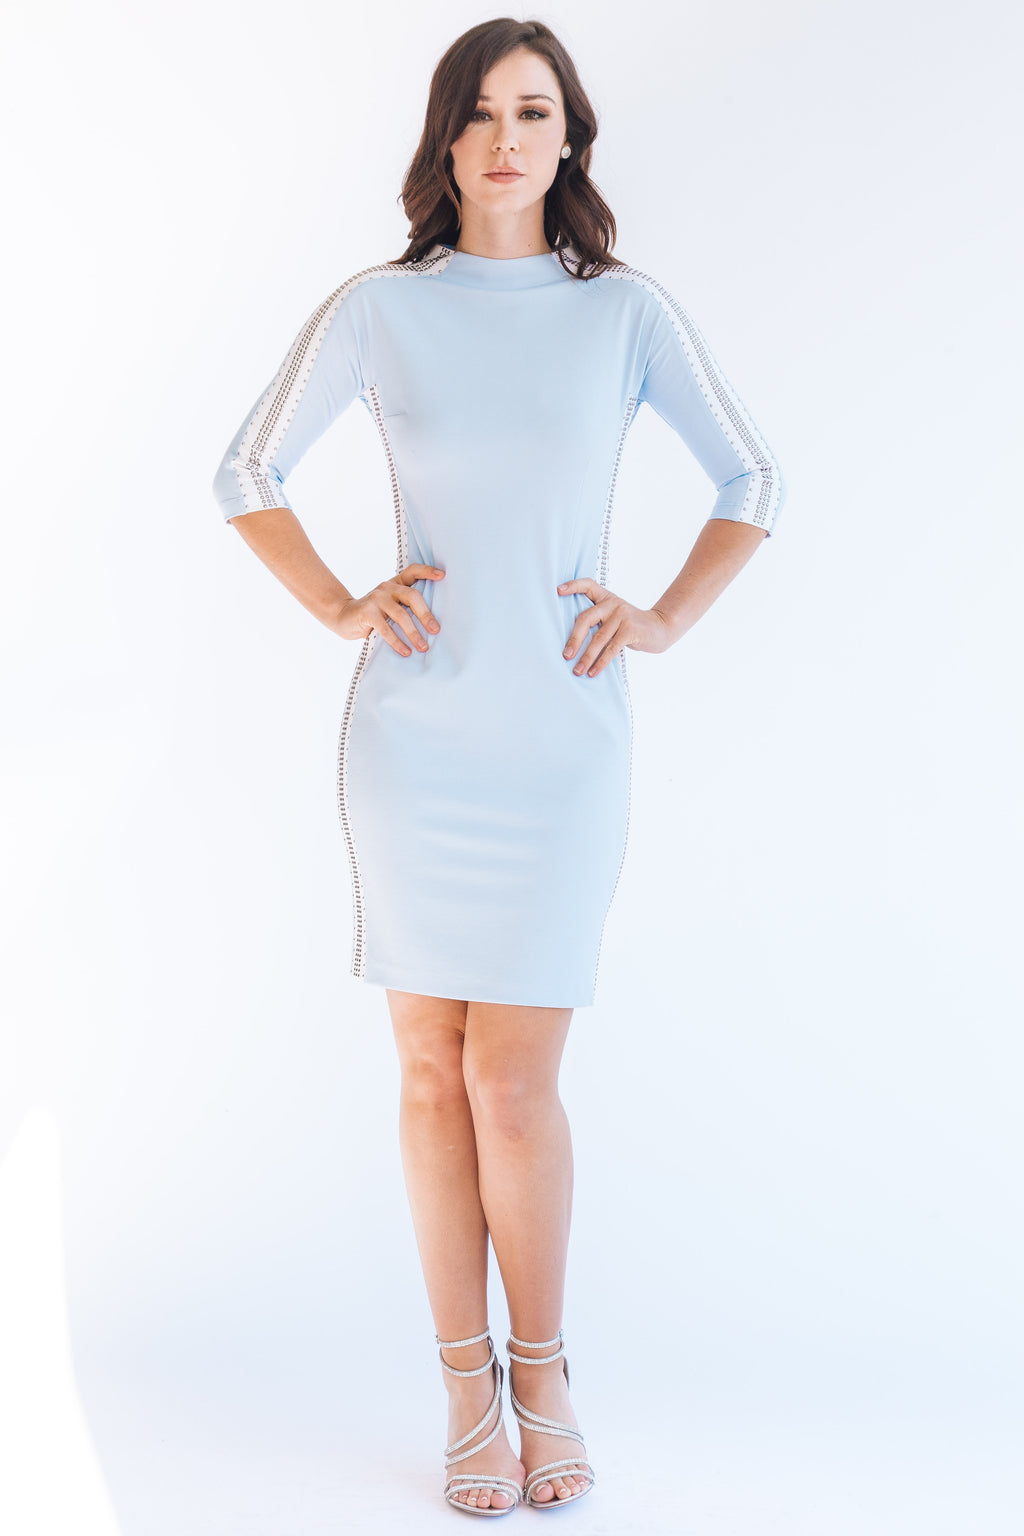 Domestud Racing Stripe Dress - W1480207